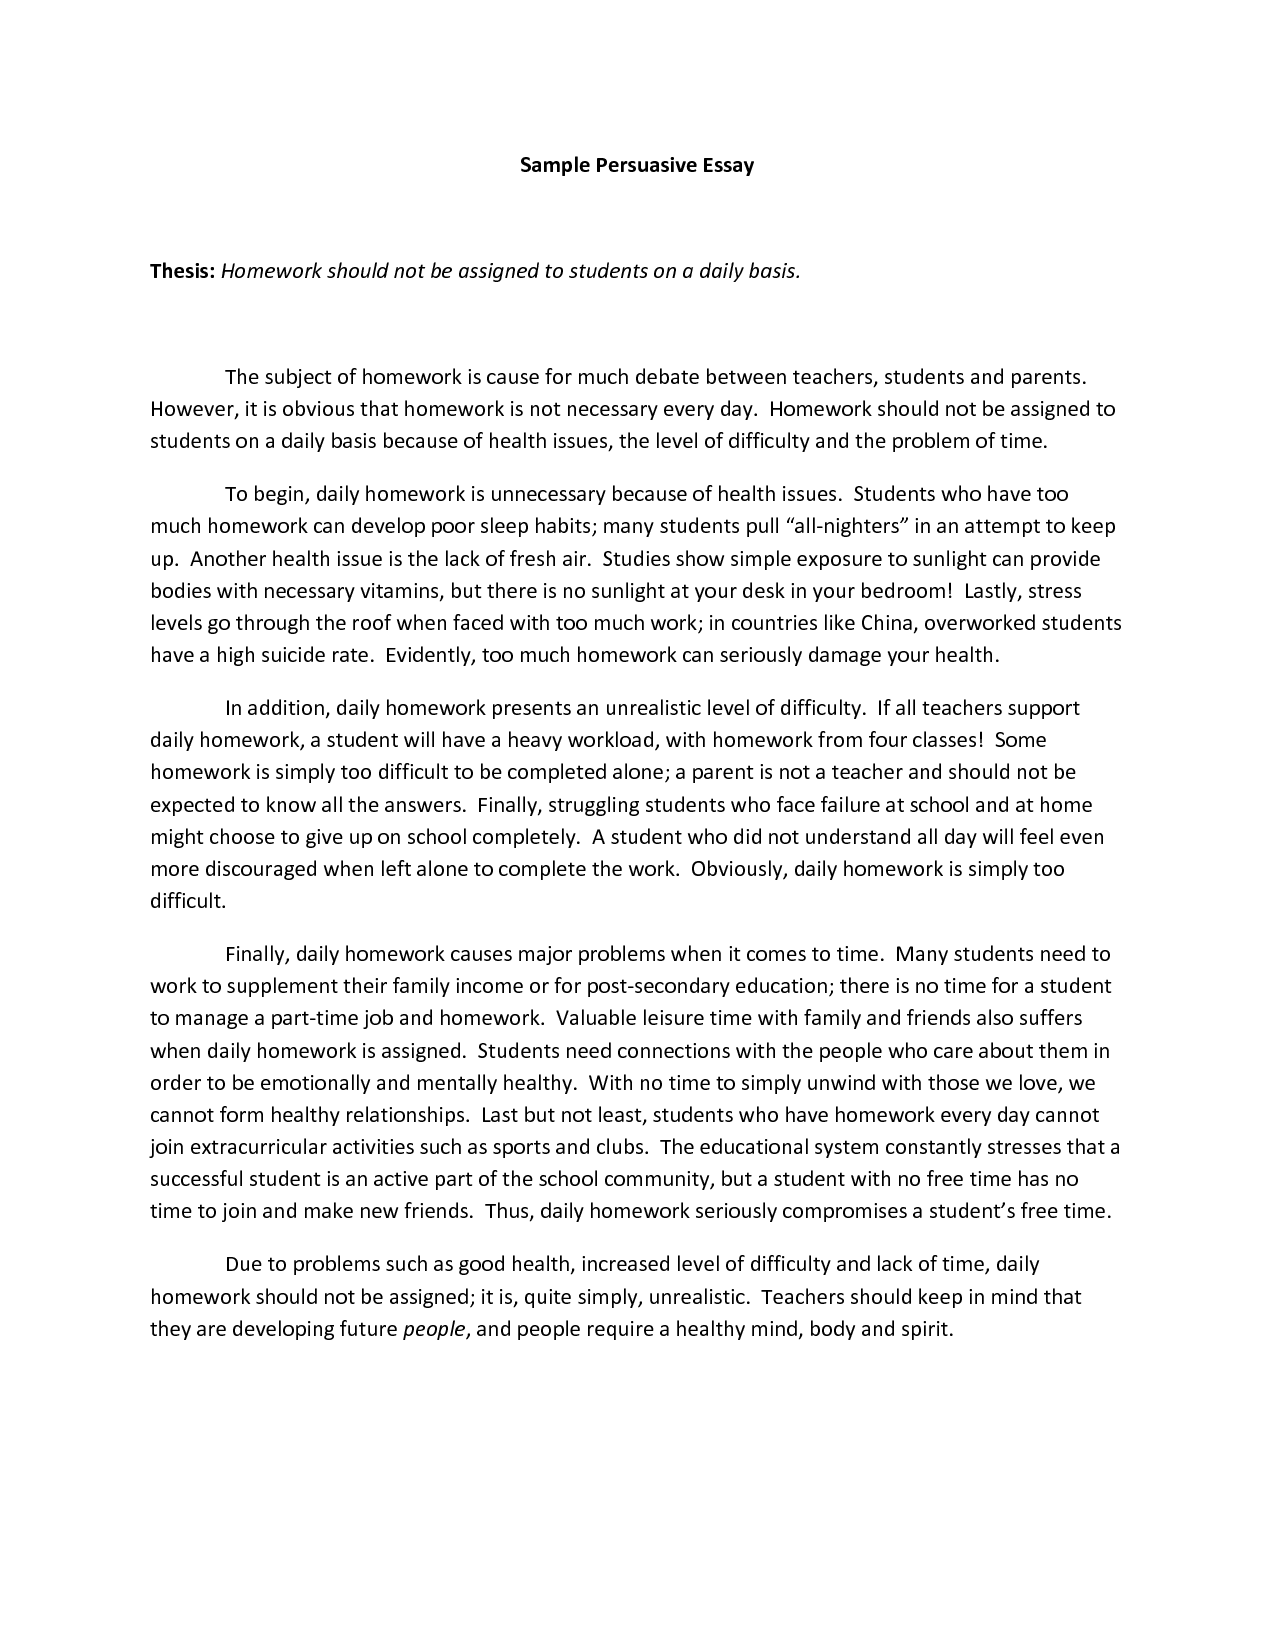 persuasive essay writing persuasive essay writer tufadmersincom topic ideas for persuasive essay persuasive essay topics middle school ideas for a persuasive essay essay essay topics persuasive essay topics th grade